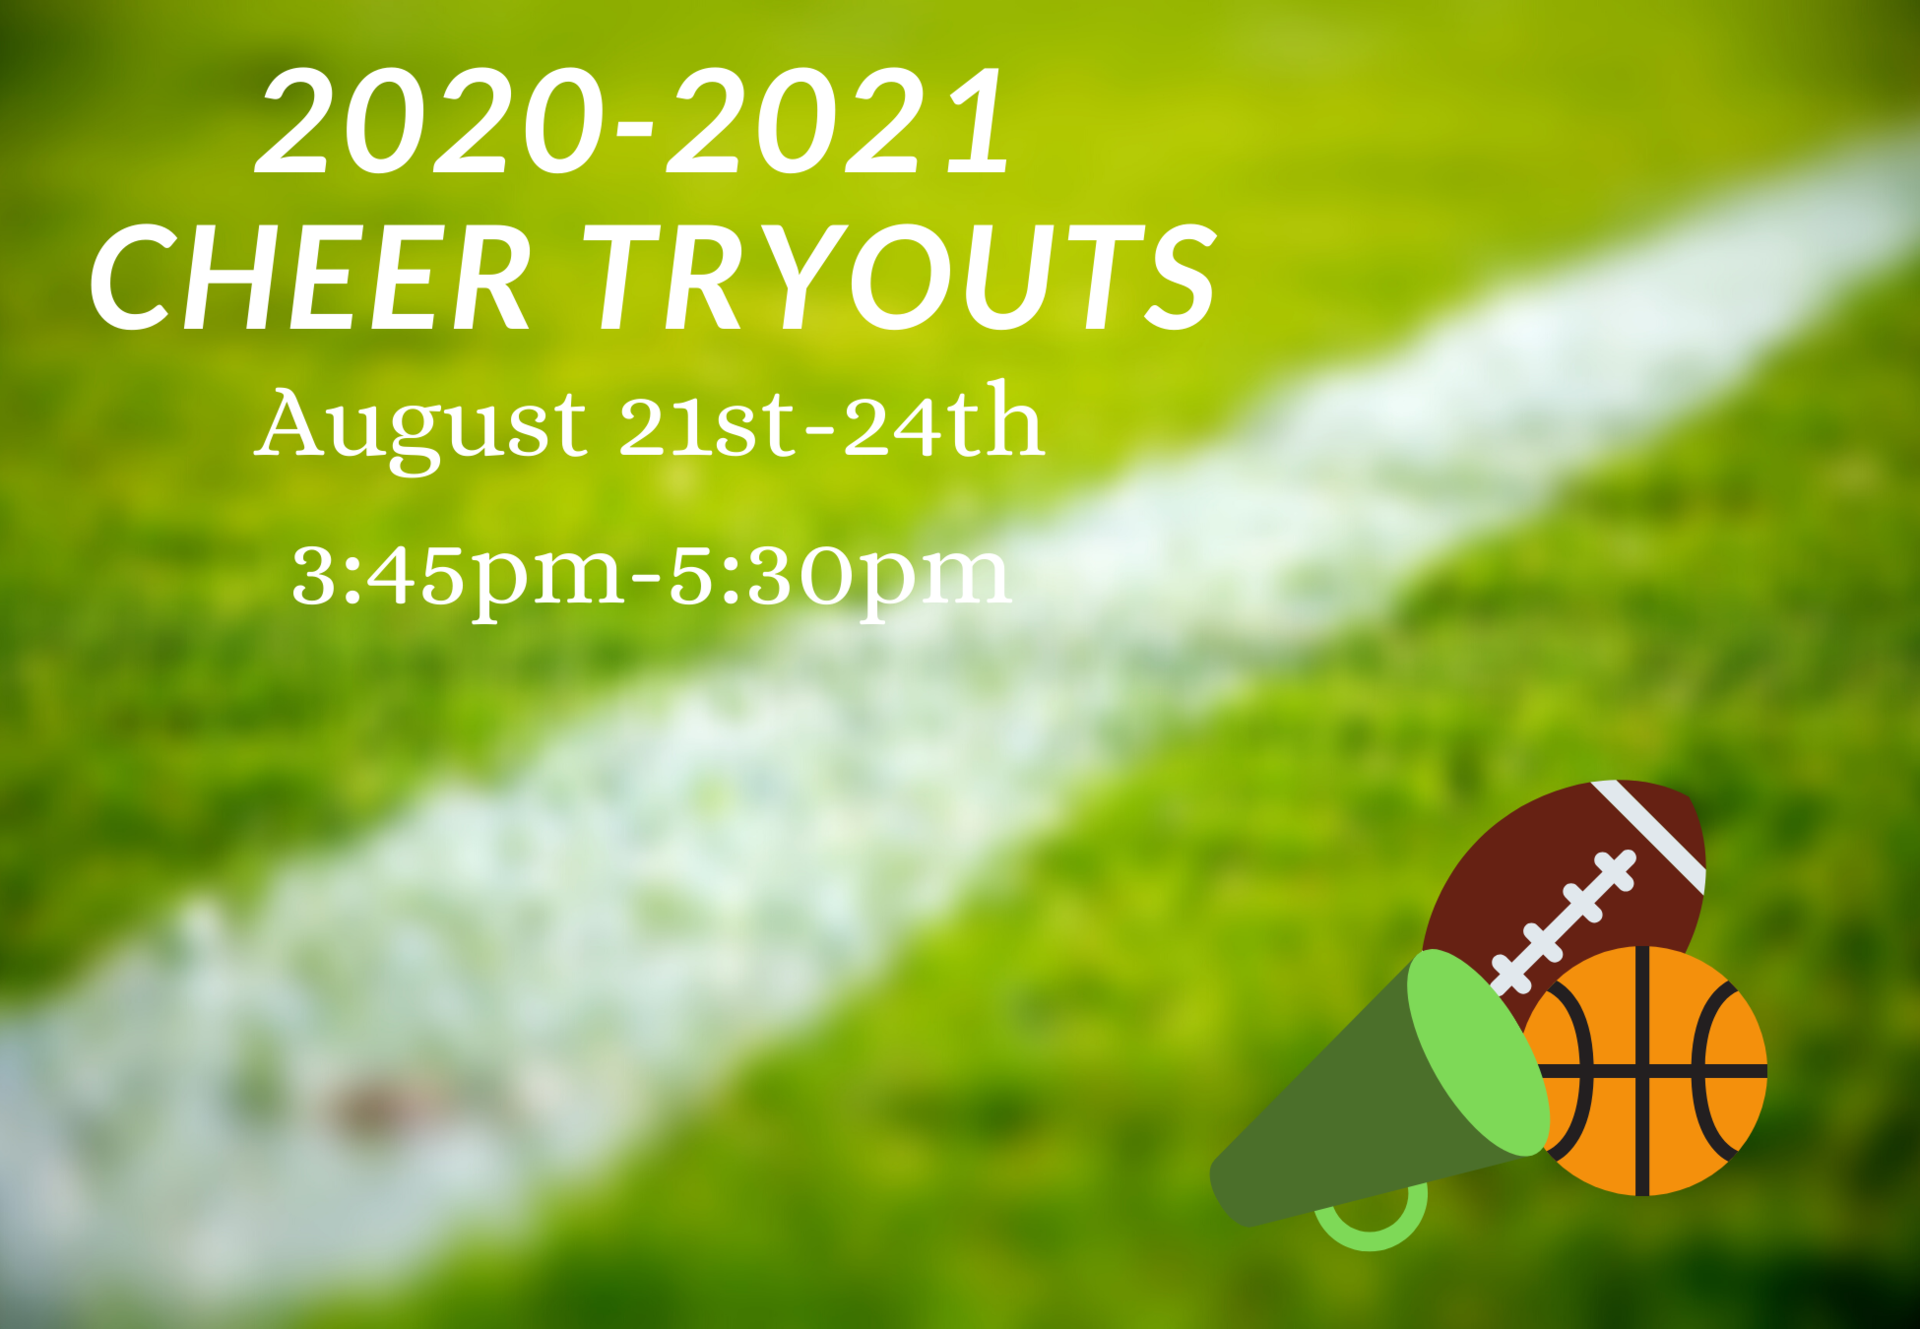 cheer tryouts august 2020